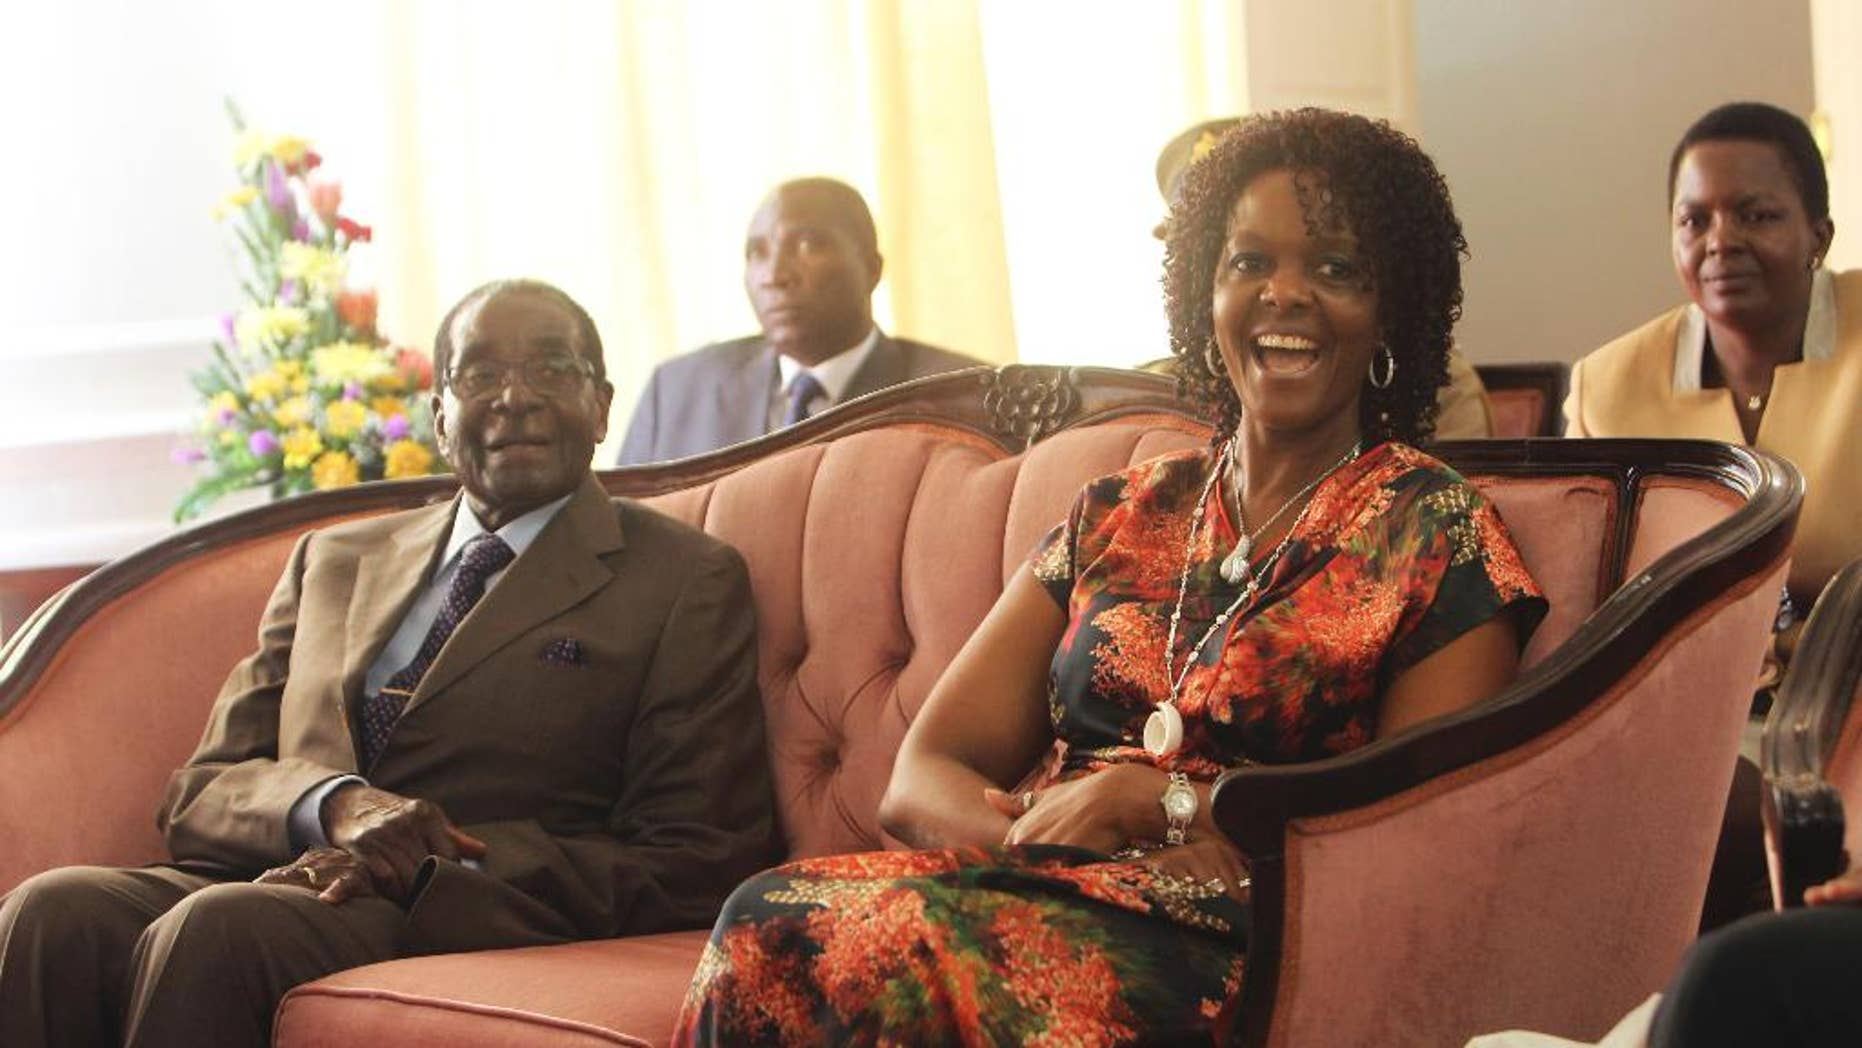 Zimbabwe's President Robert Mugabe and his wife Grace are seen during a birthday party for him in Harare, Feb, 22, 2016.